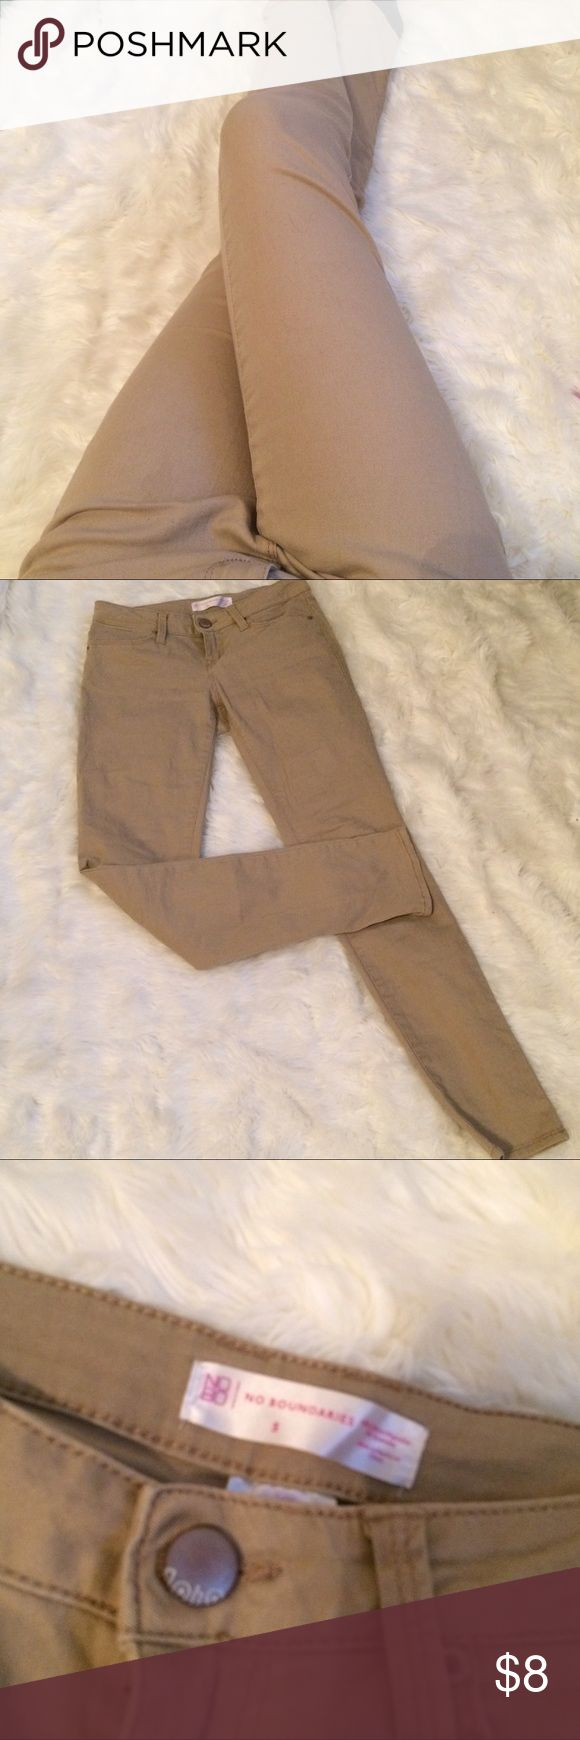 Tan jeans size 5 Size 5 juniors like new perfect for work #jeans #size5 #juniors No Boundaries Jeans